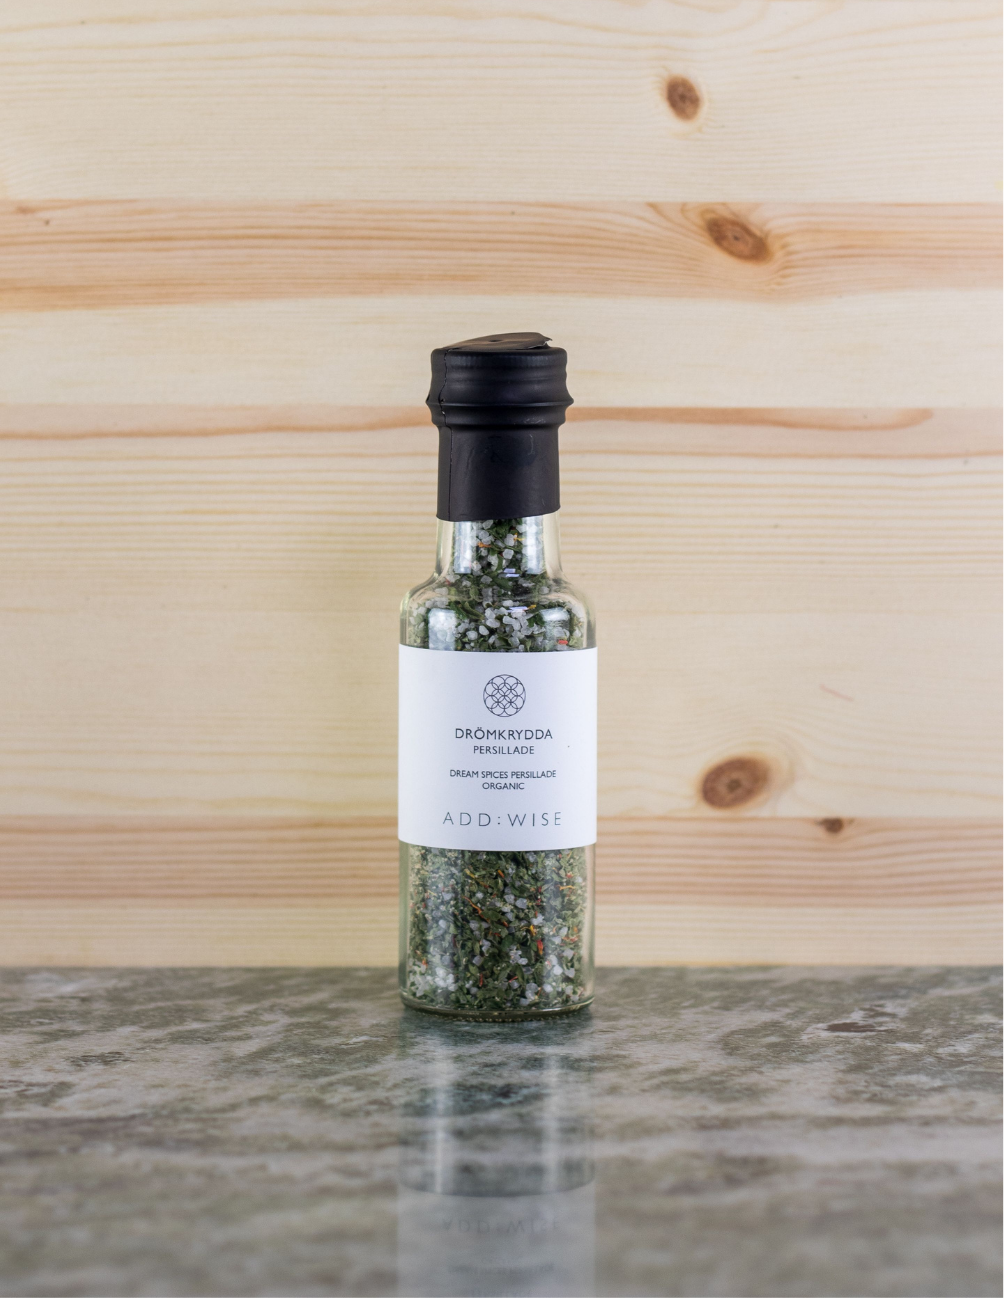 Dream Spice Parsley